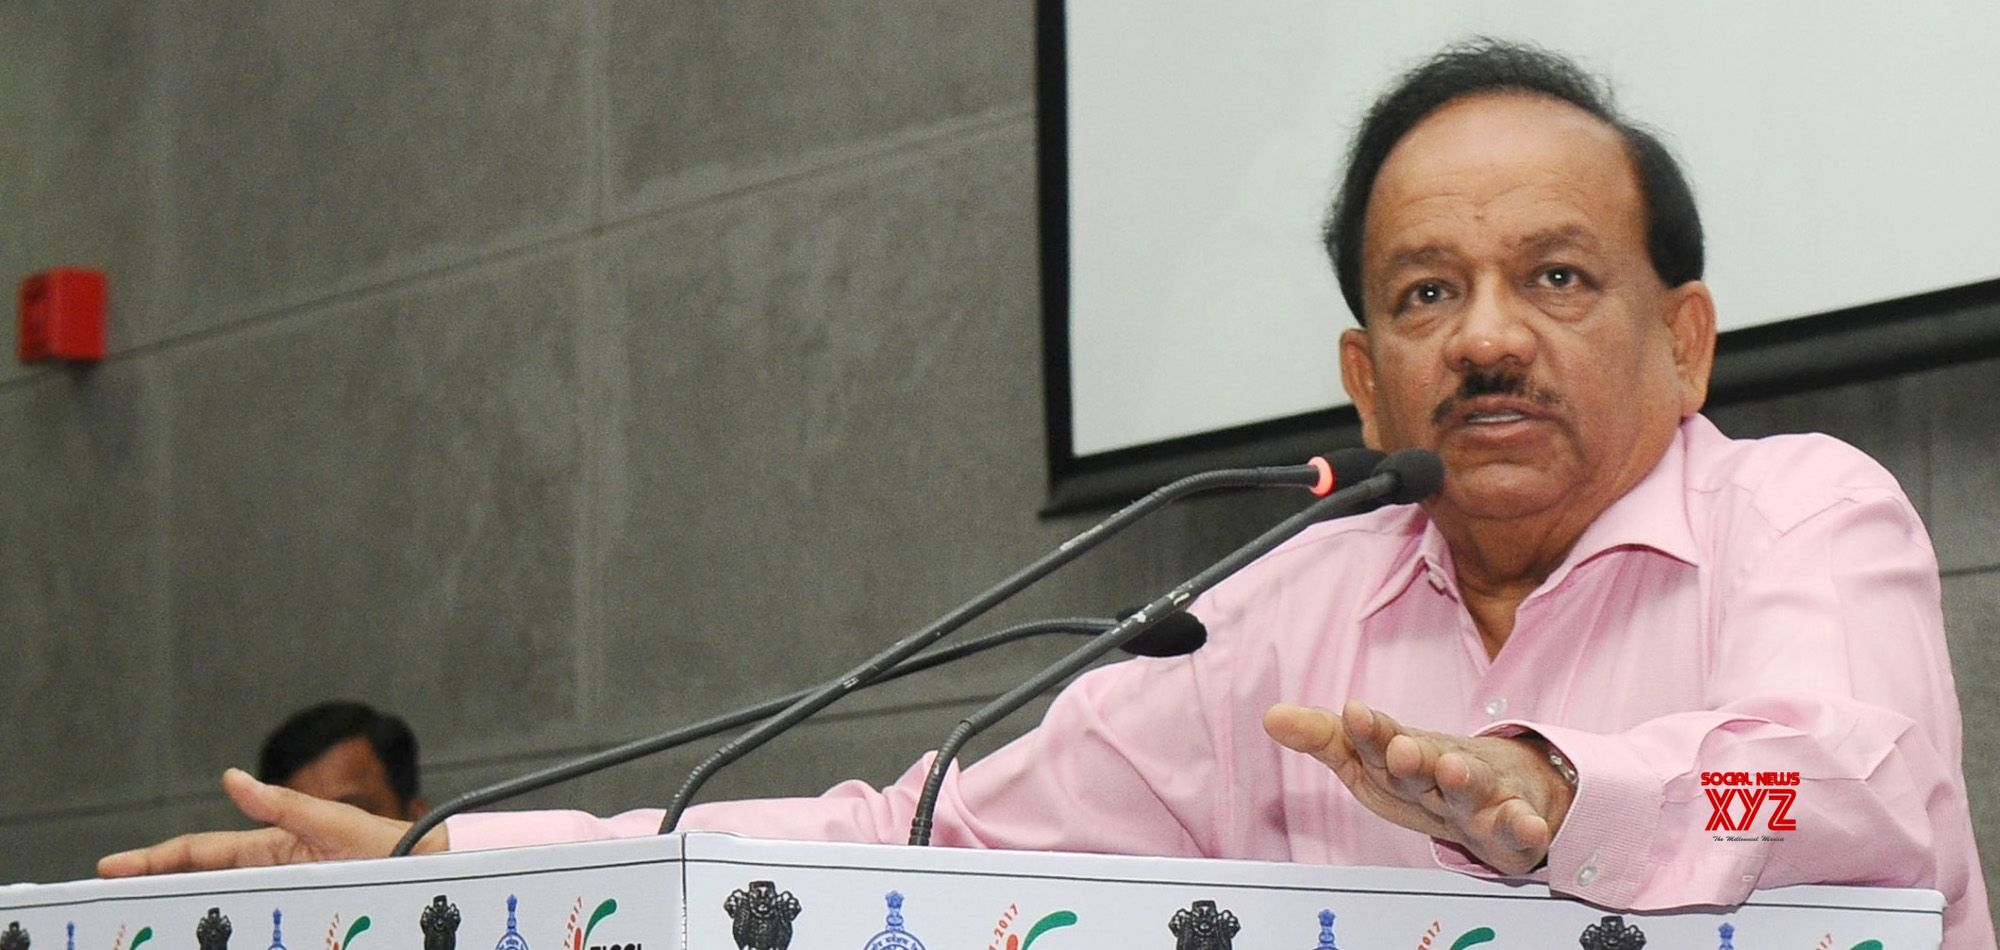 Ignorance behind violence: Harsh Vardhan